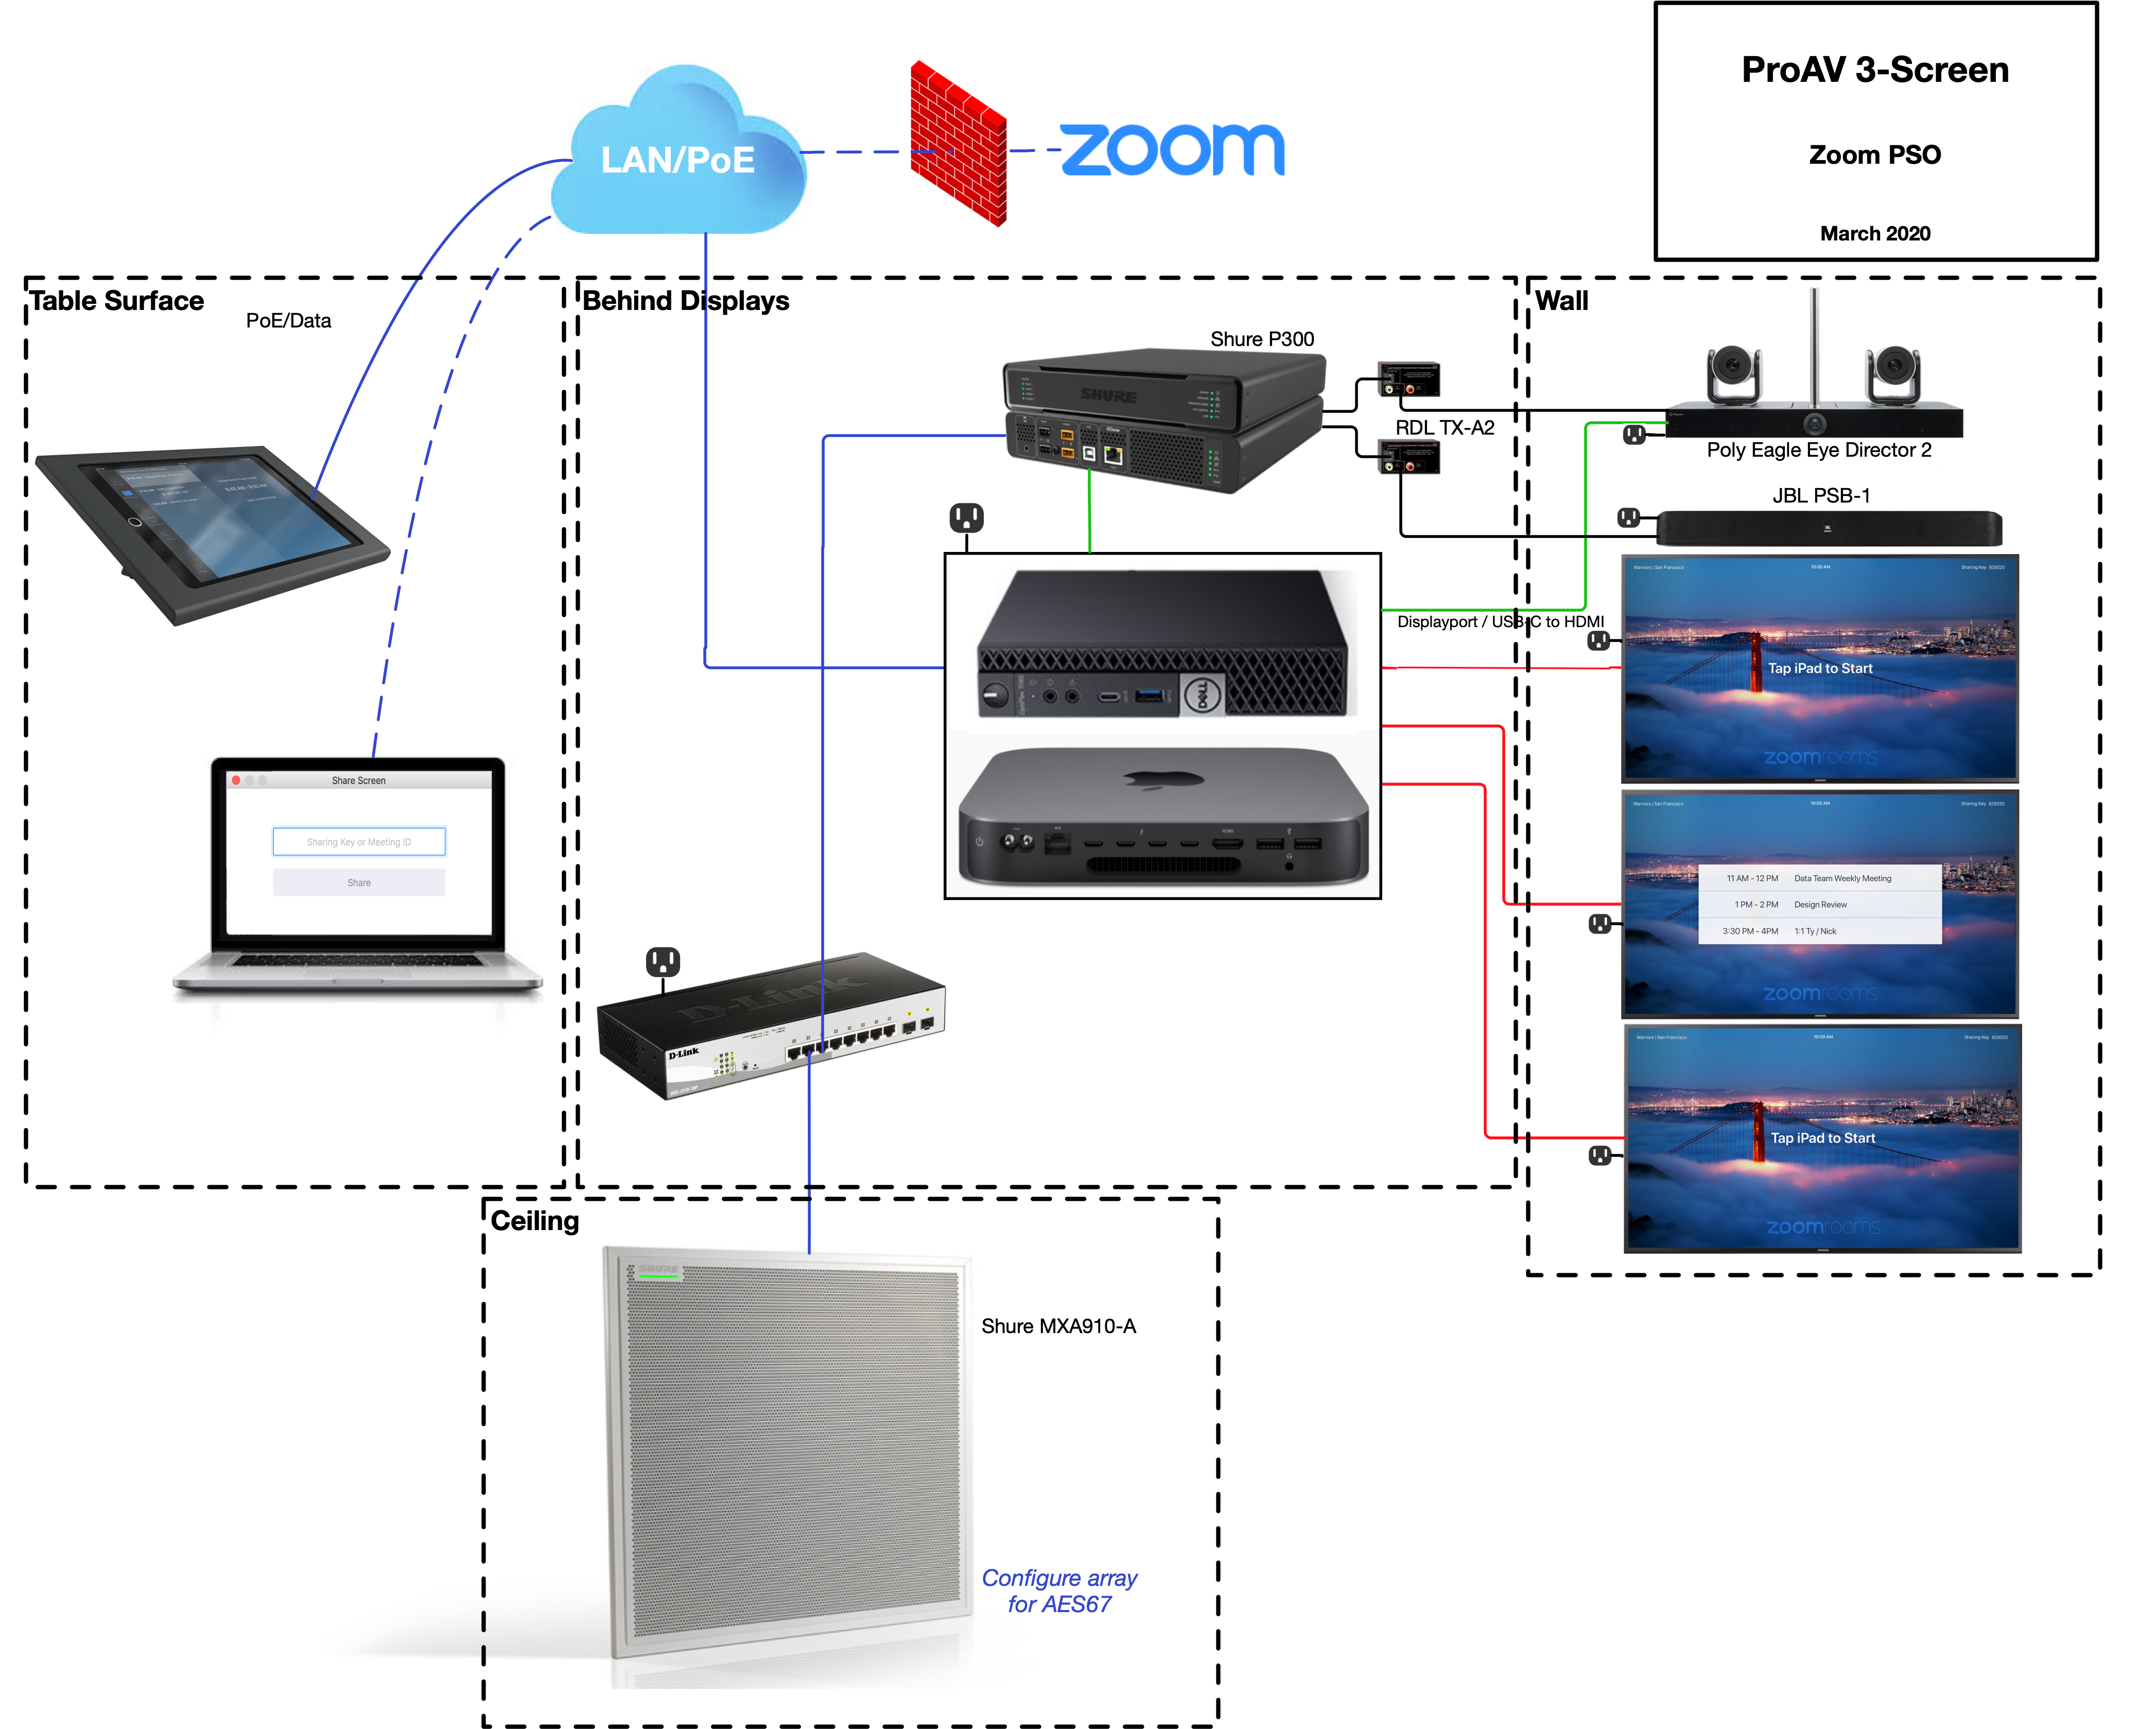 Pictorial_Schematic_-_Zoom_Rooms_ProAV_3-Screen__6-10_People__P300.png